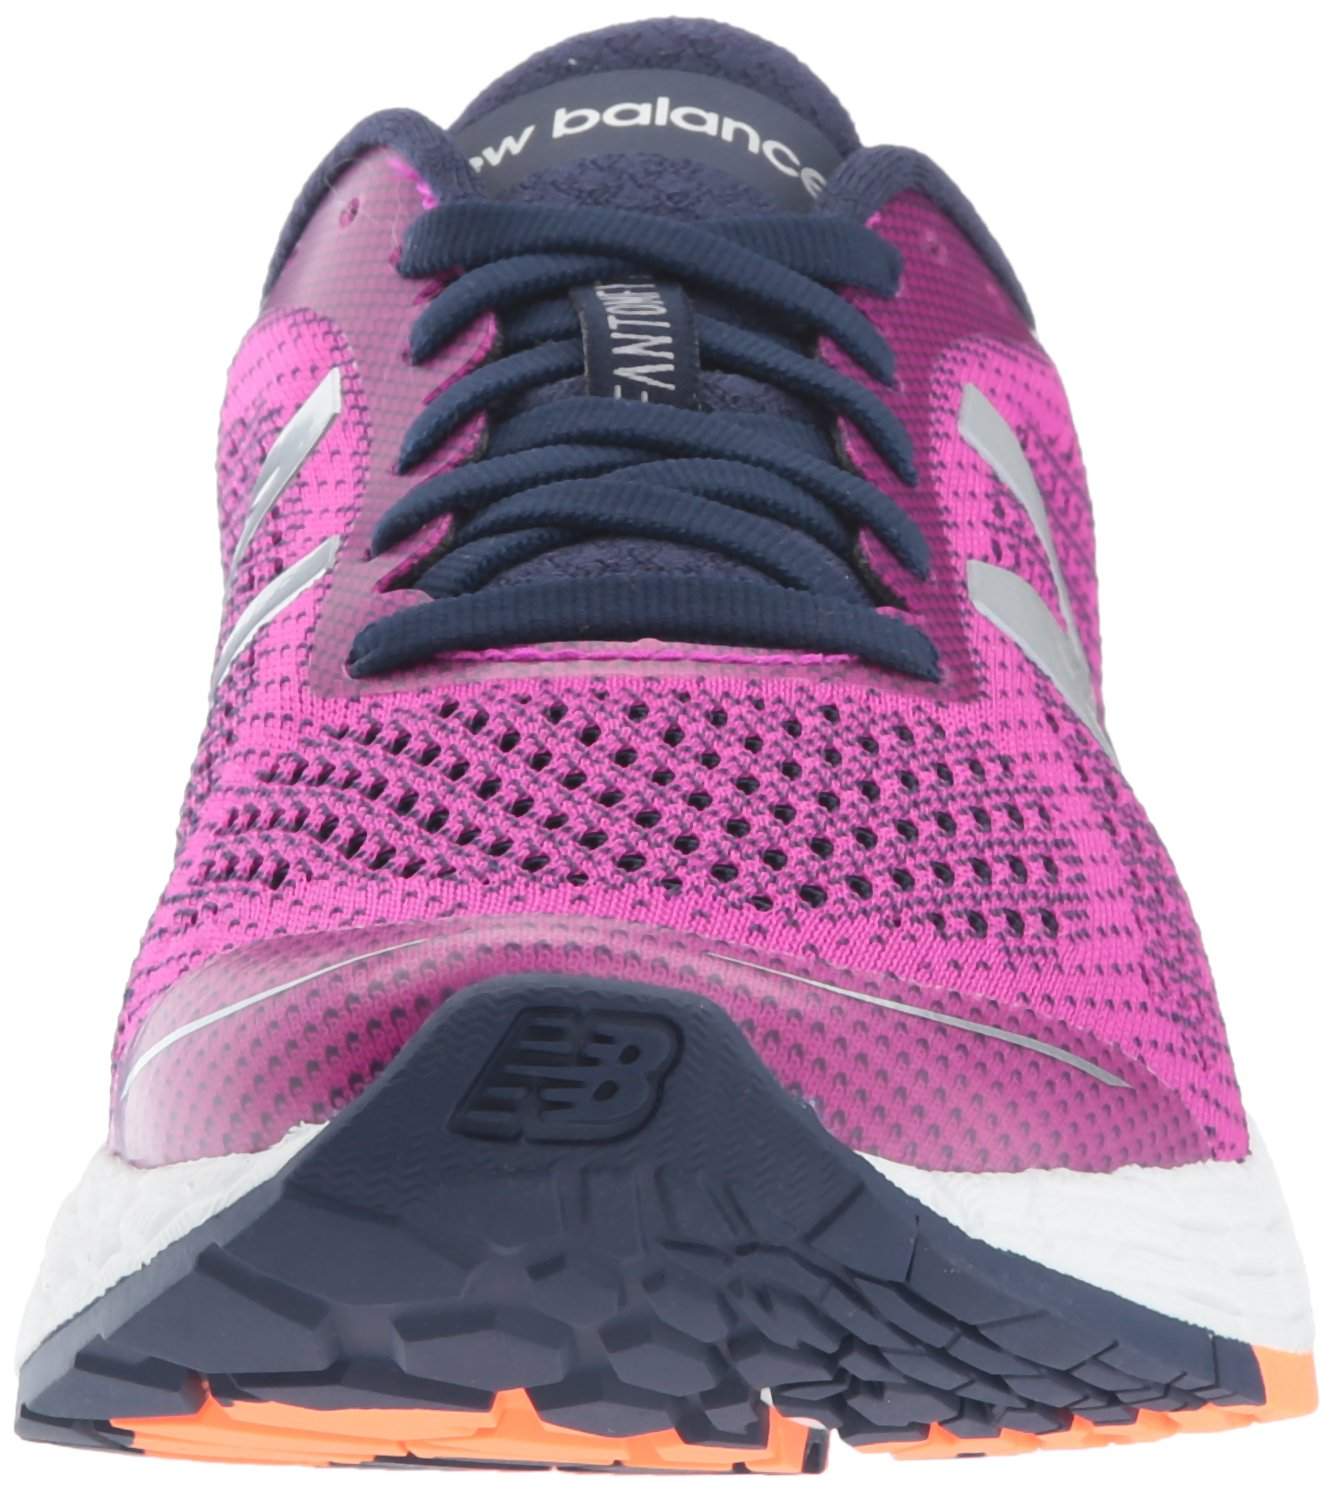 New B01N77XBT6 Balance Women's VONGOV2 Running-Shoes B01N77XBT6 New 9.5 B(M) US|Poisonberry/Vivid Tangerine 58d057